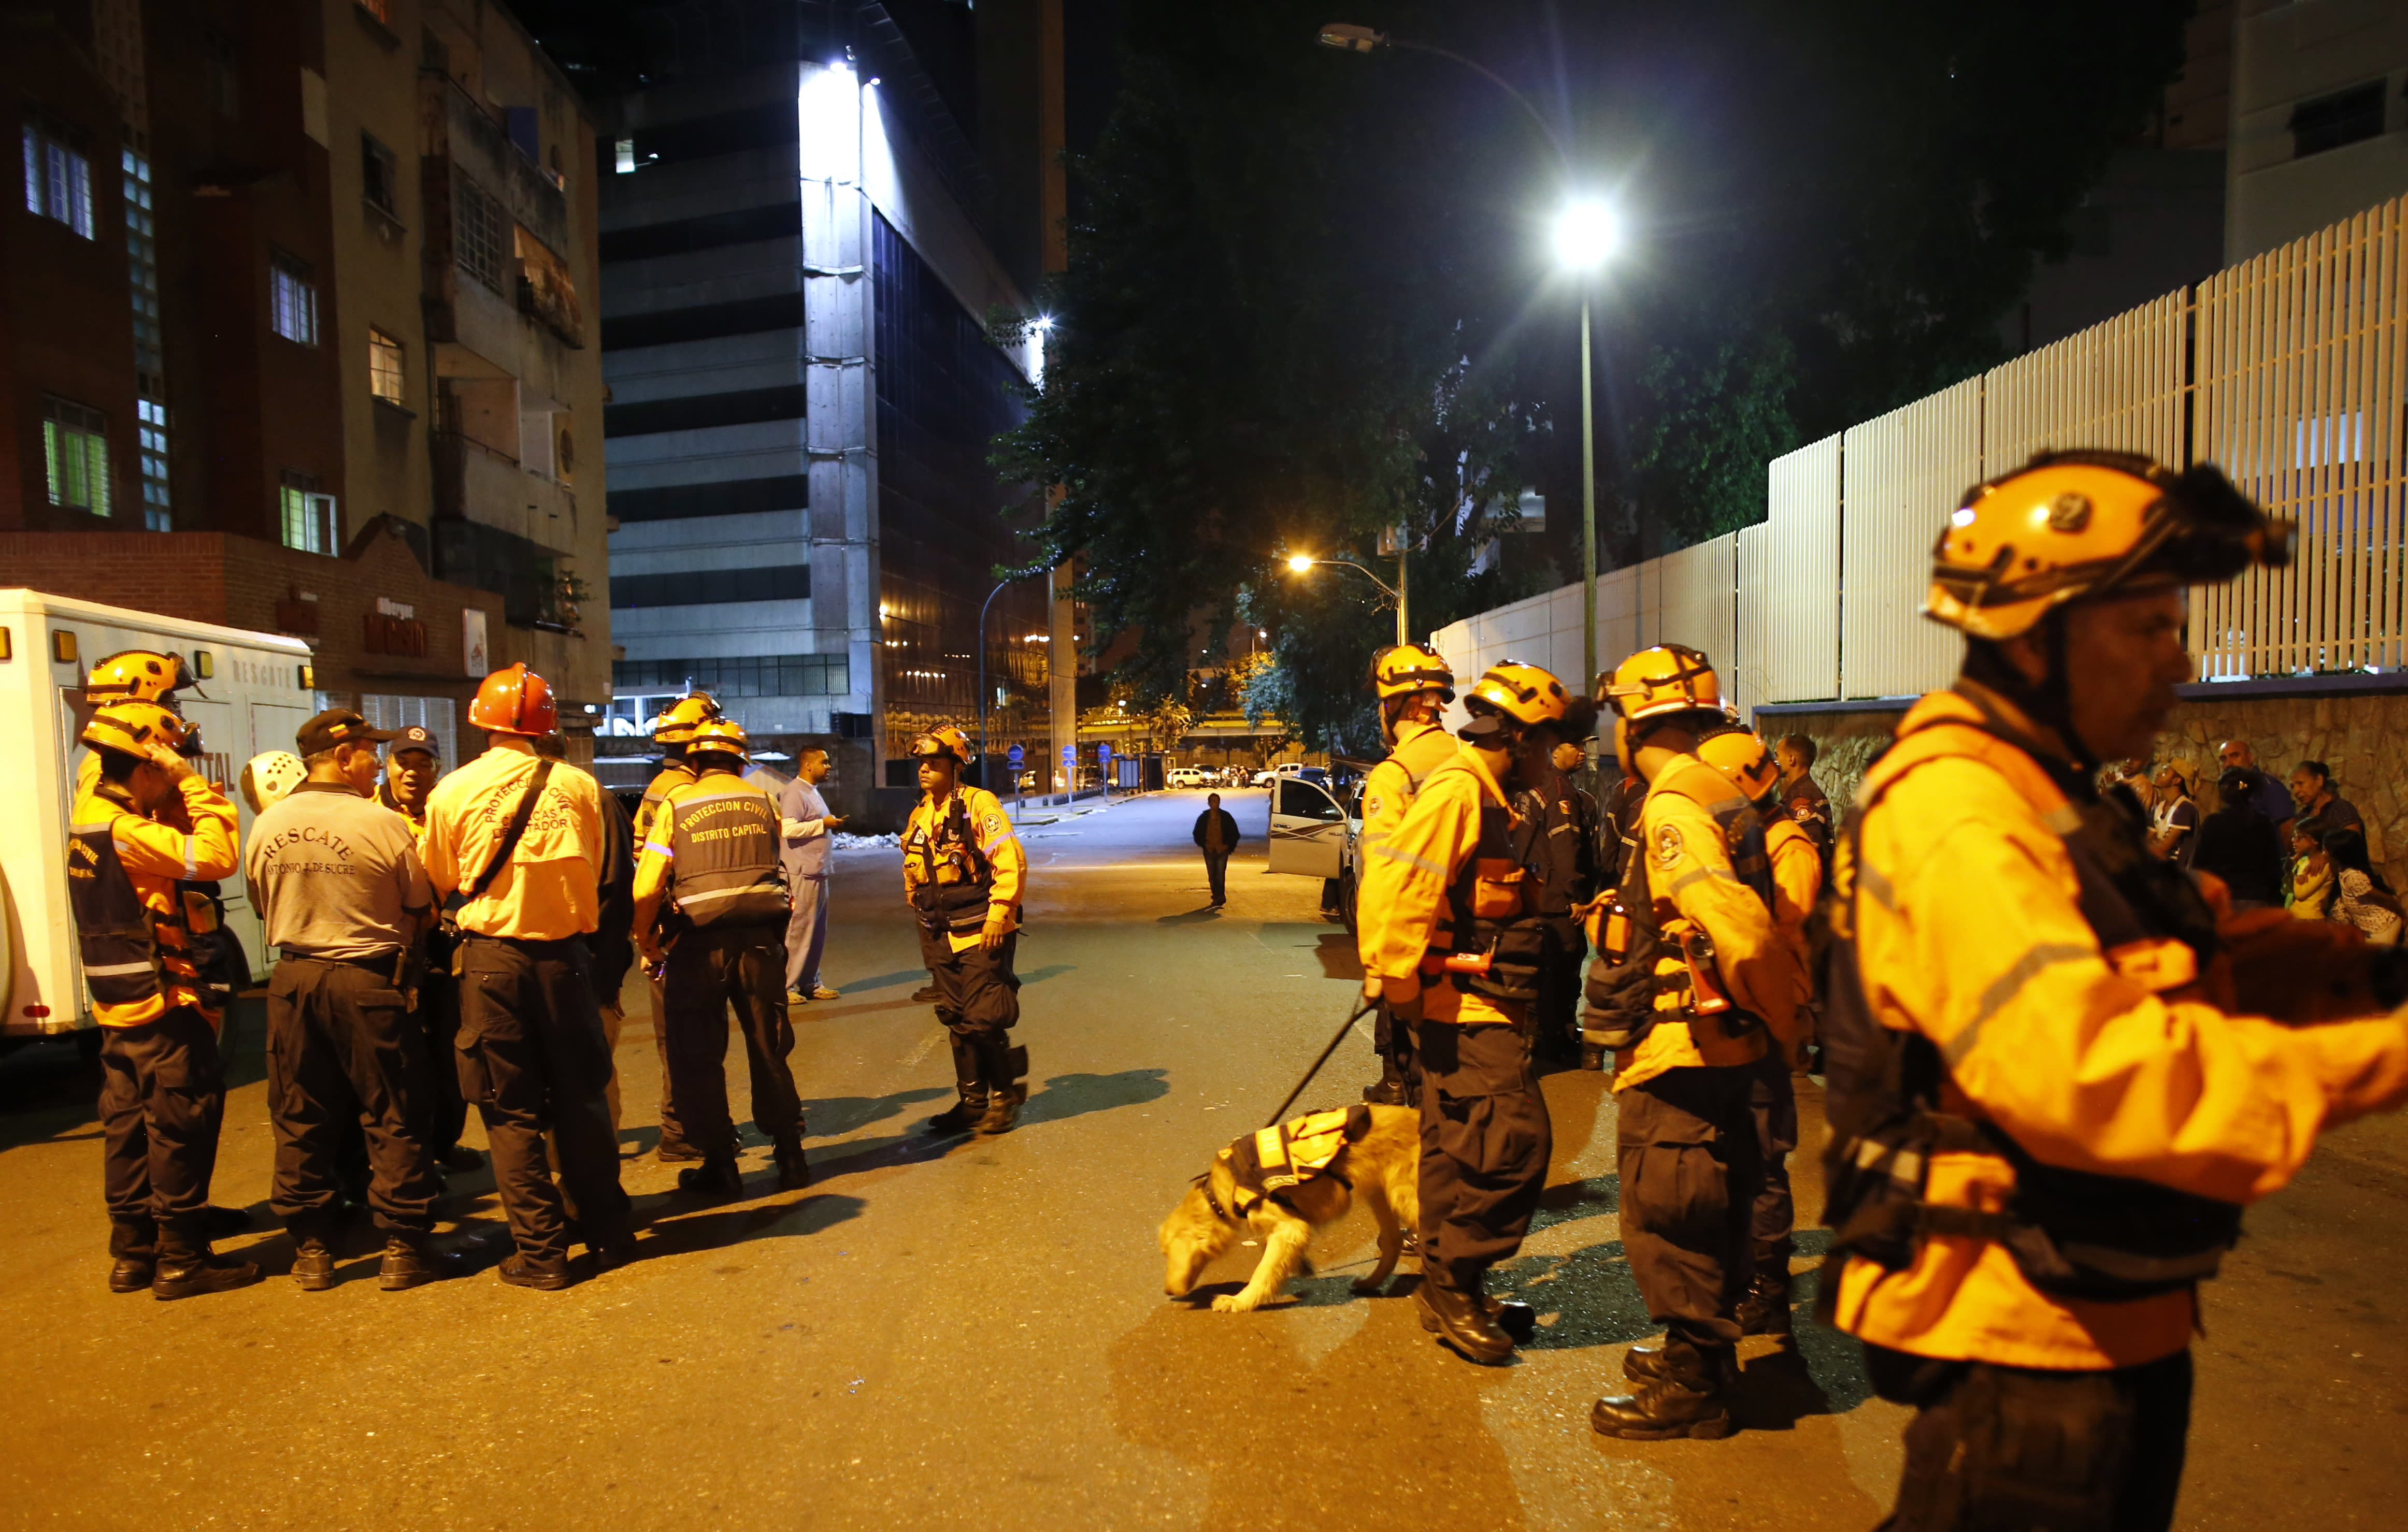 """Civil Protection workers patrol near the """"Tower of David"""" skyscraper, which suffered an inclination after a powerful earthquake shook eastern Venezuela, causing buildings to be evacuated in the capital of Caracas, Venezuela, Tuesday, Aug. 21, 2018. The quake was felt as far away as Colombia's capital and in the Venezuelan capital office workers evacuated buildings and people fled homes. (AP Photo/Ariana Cubillos)"""